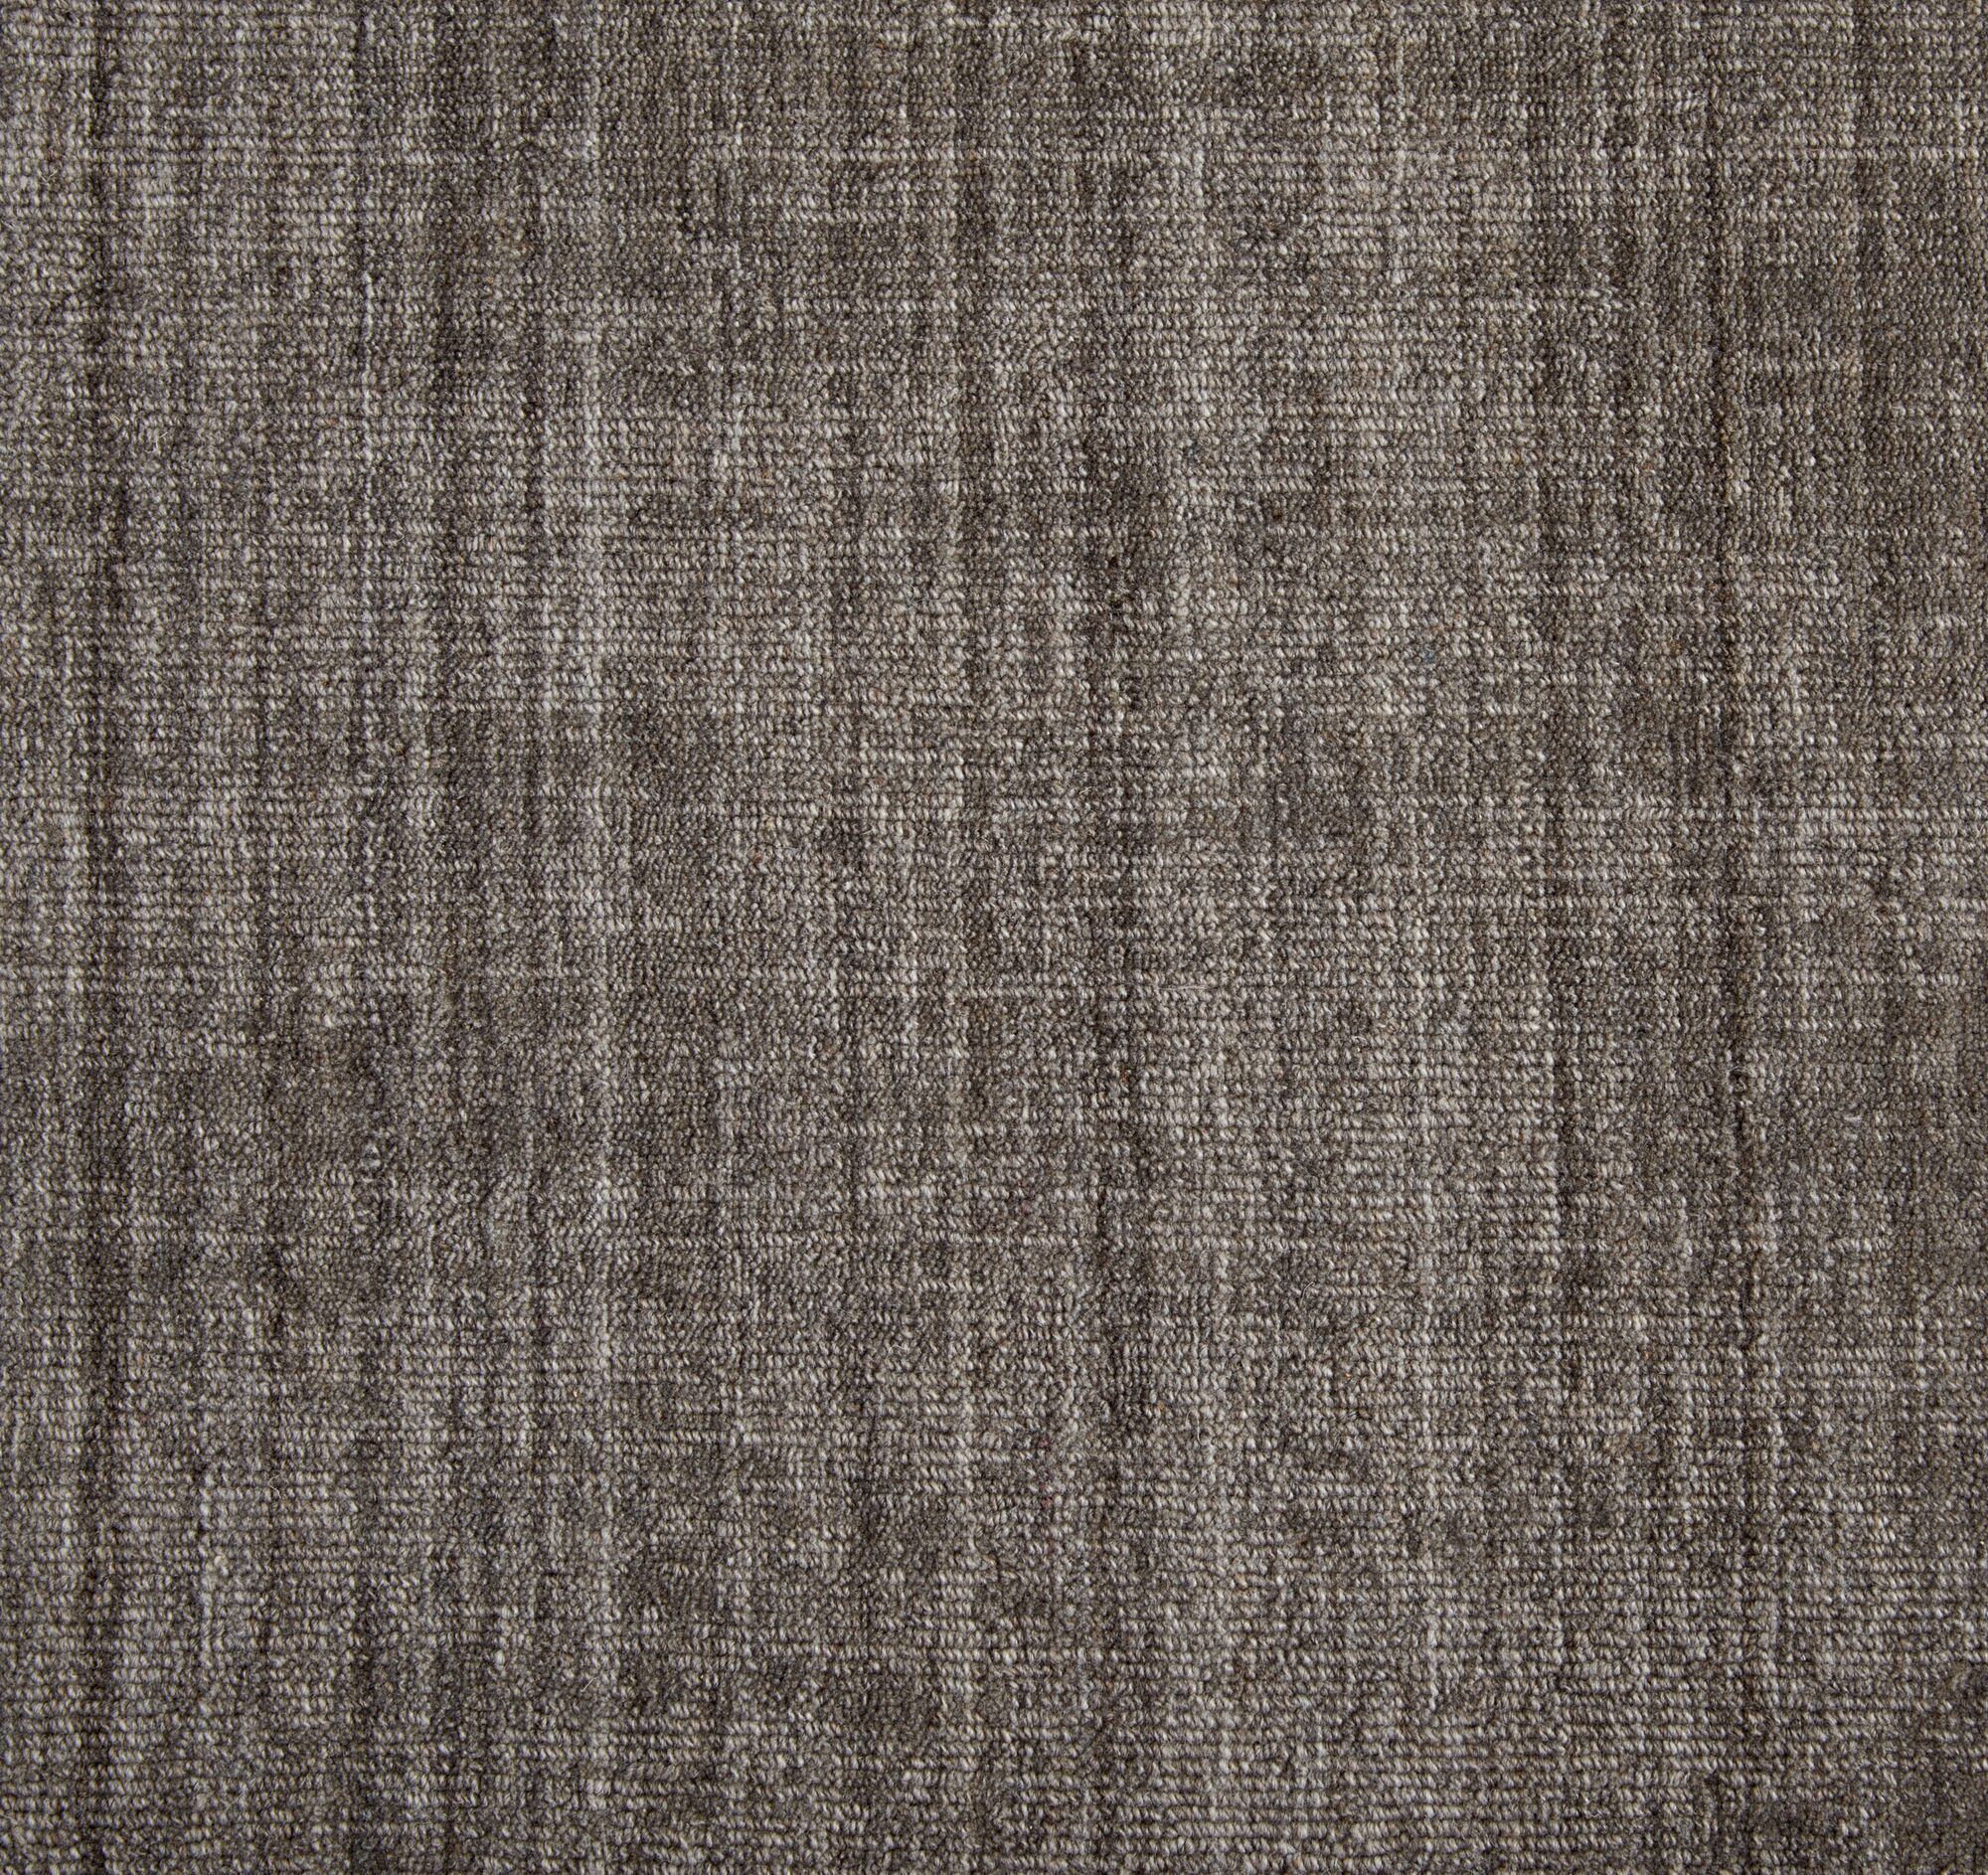 Cumberland Hand-Woven Wool Brown Area Rug Size: Rectangle 6' x 9'